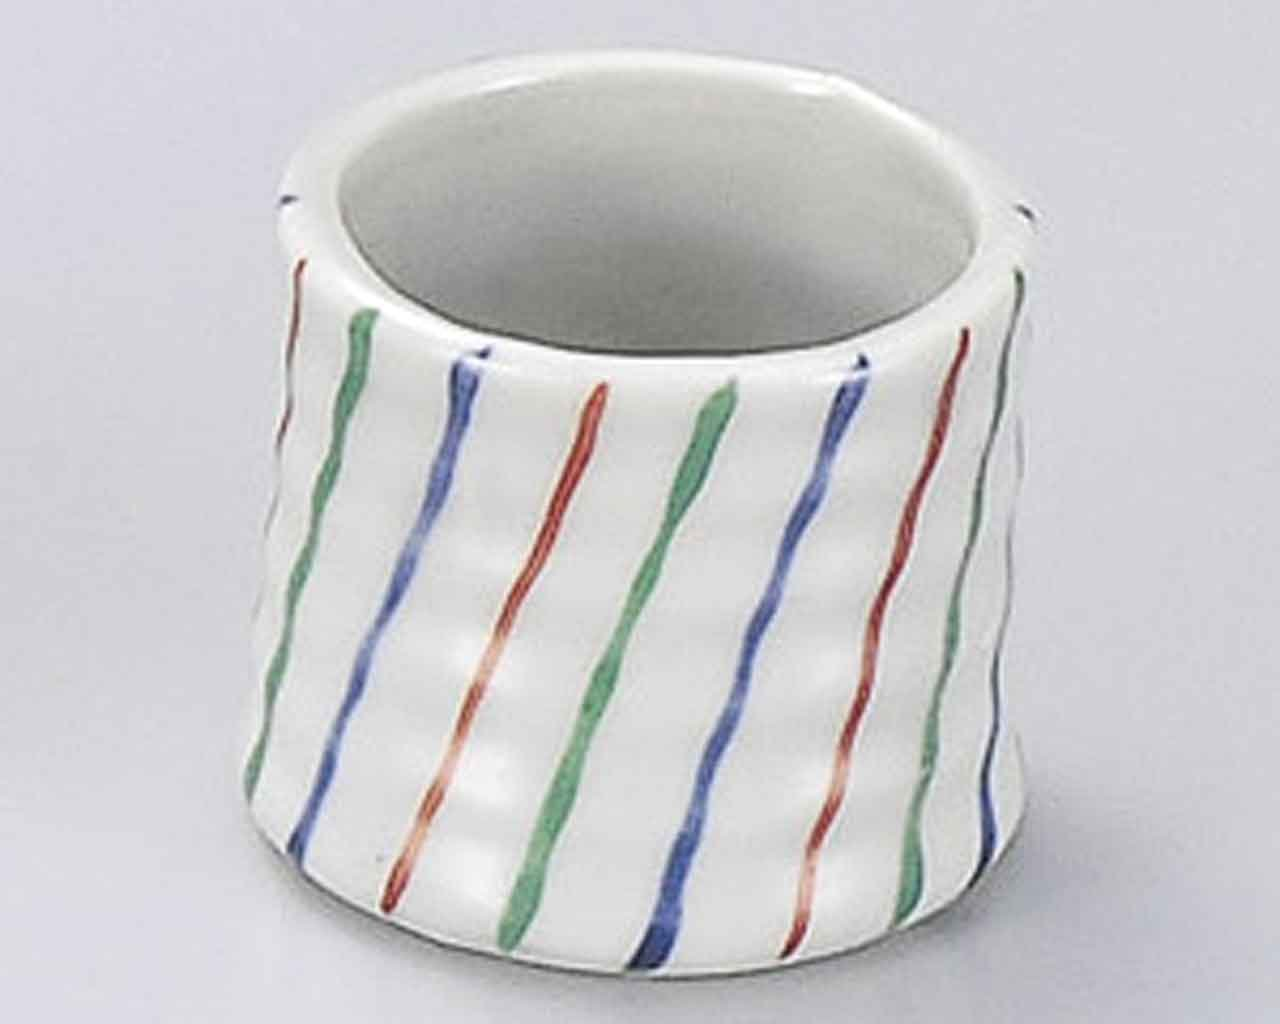 Tokusa 2inch Set of 5 Toothpick holders White porcelain Made in Japan